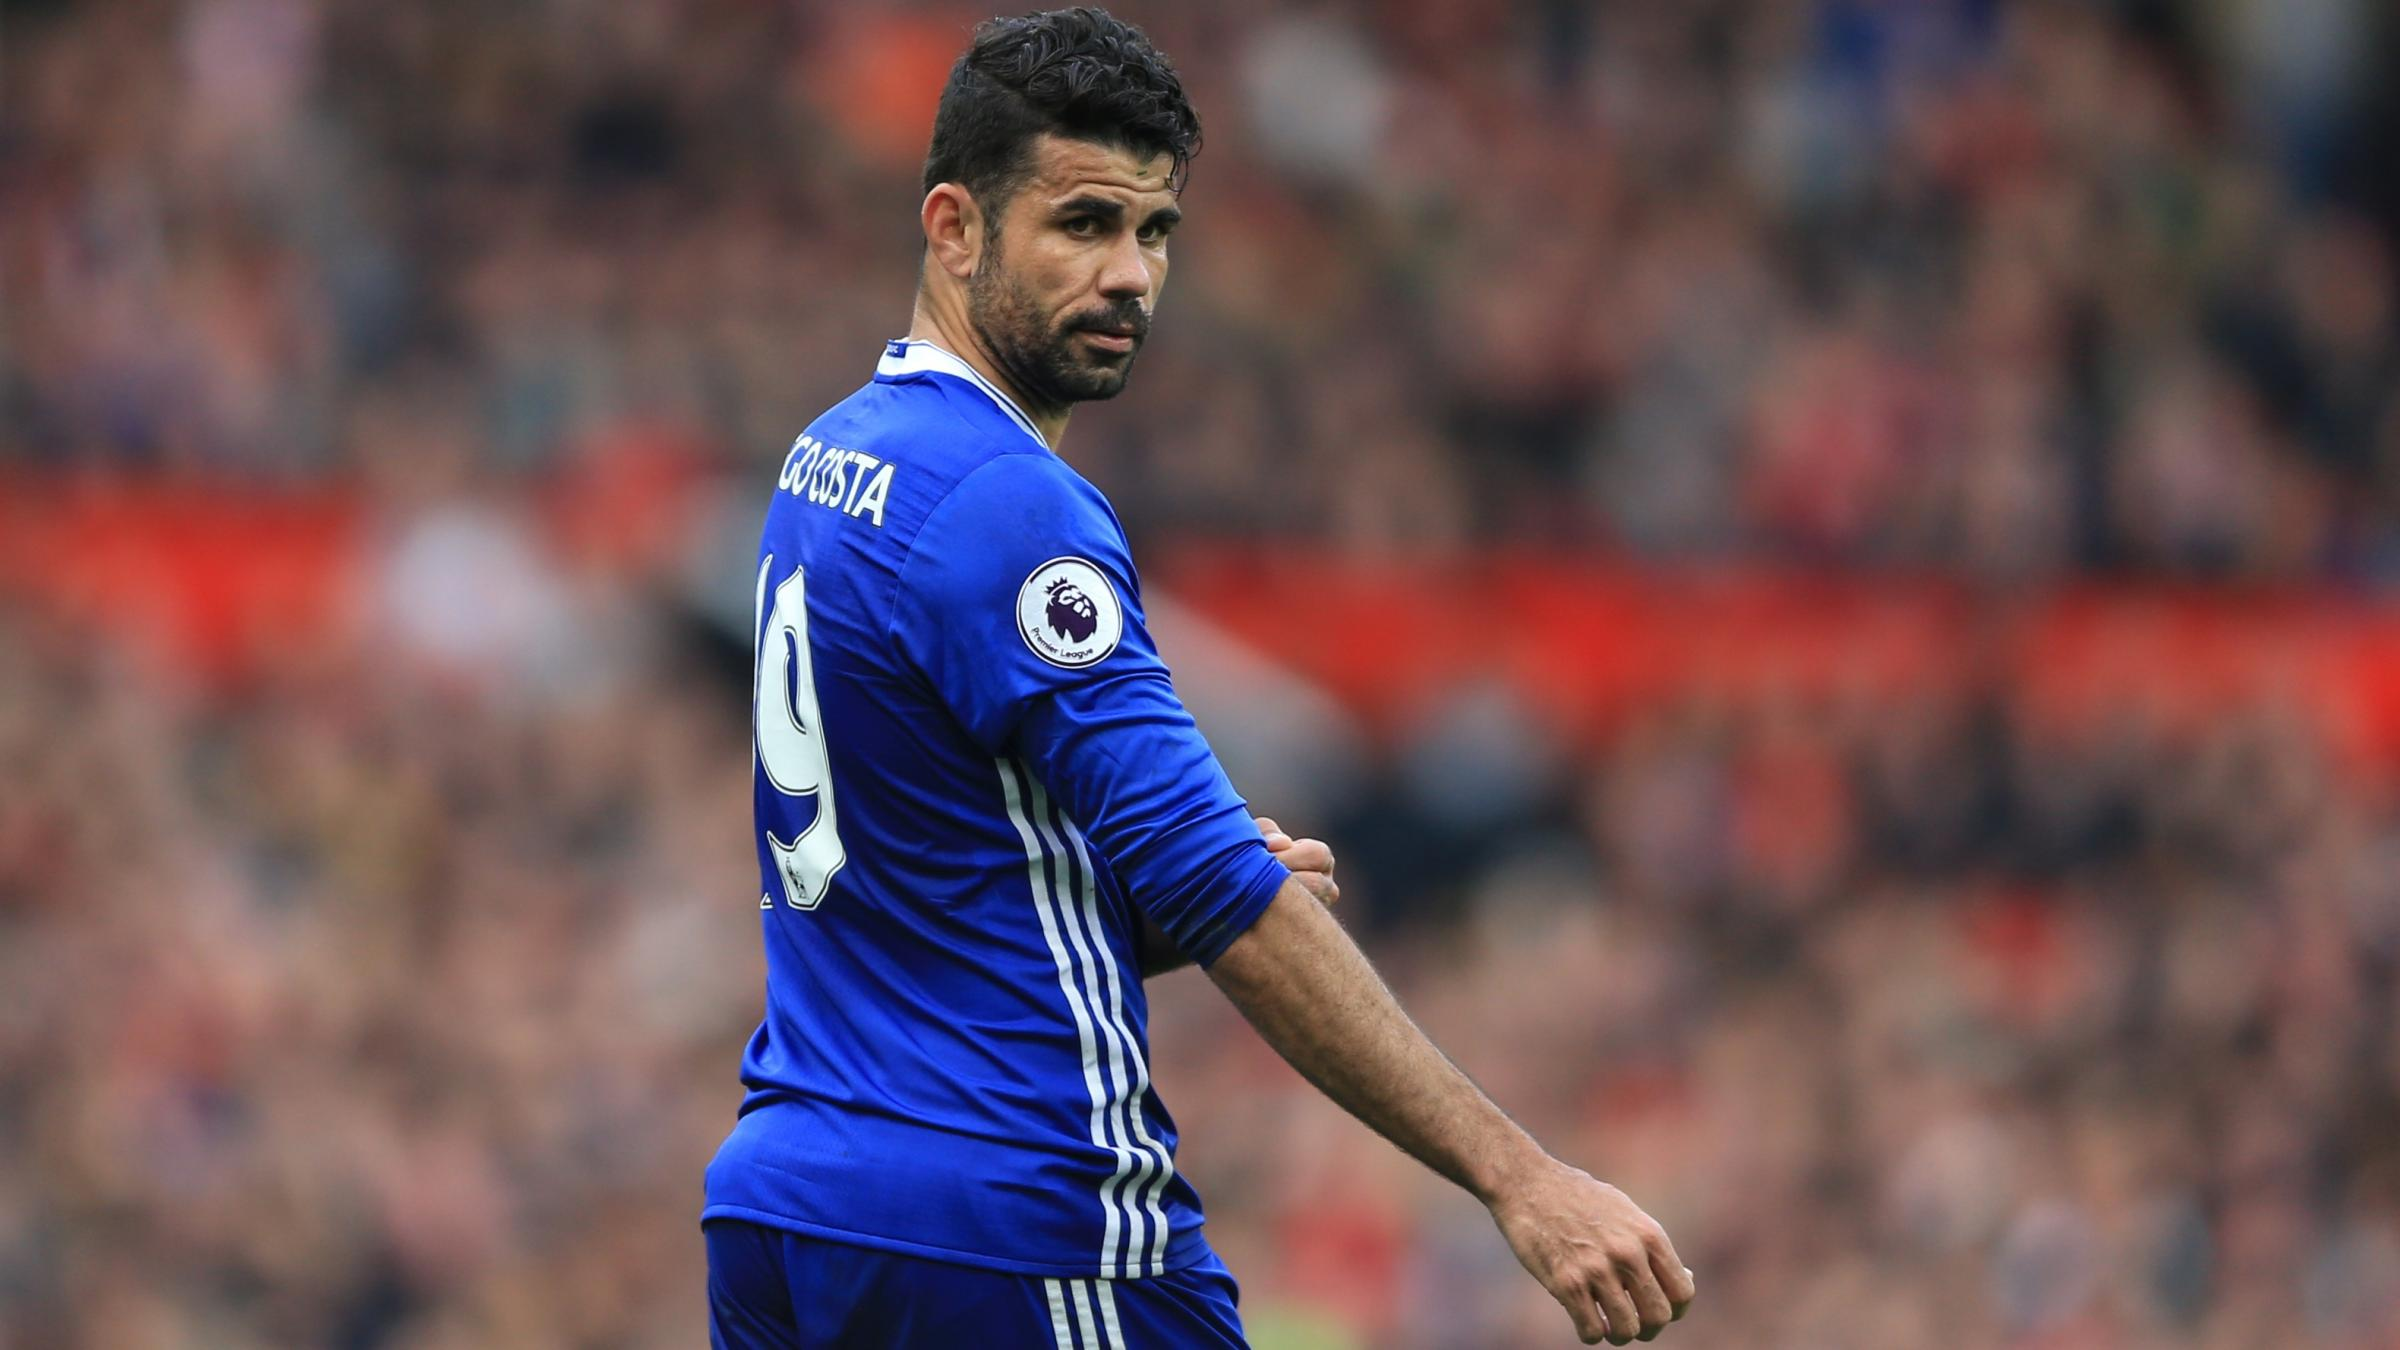 Chelsea no longer require my services - Costa